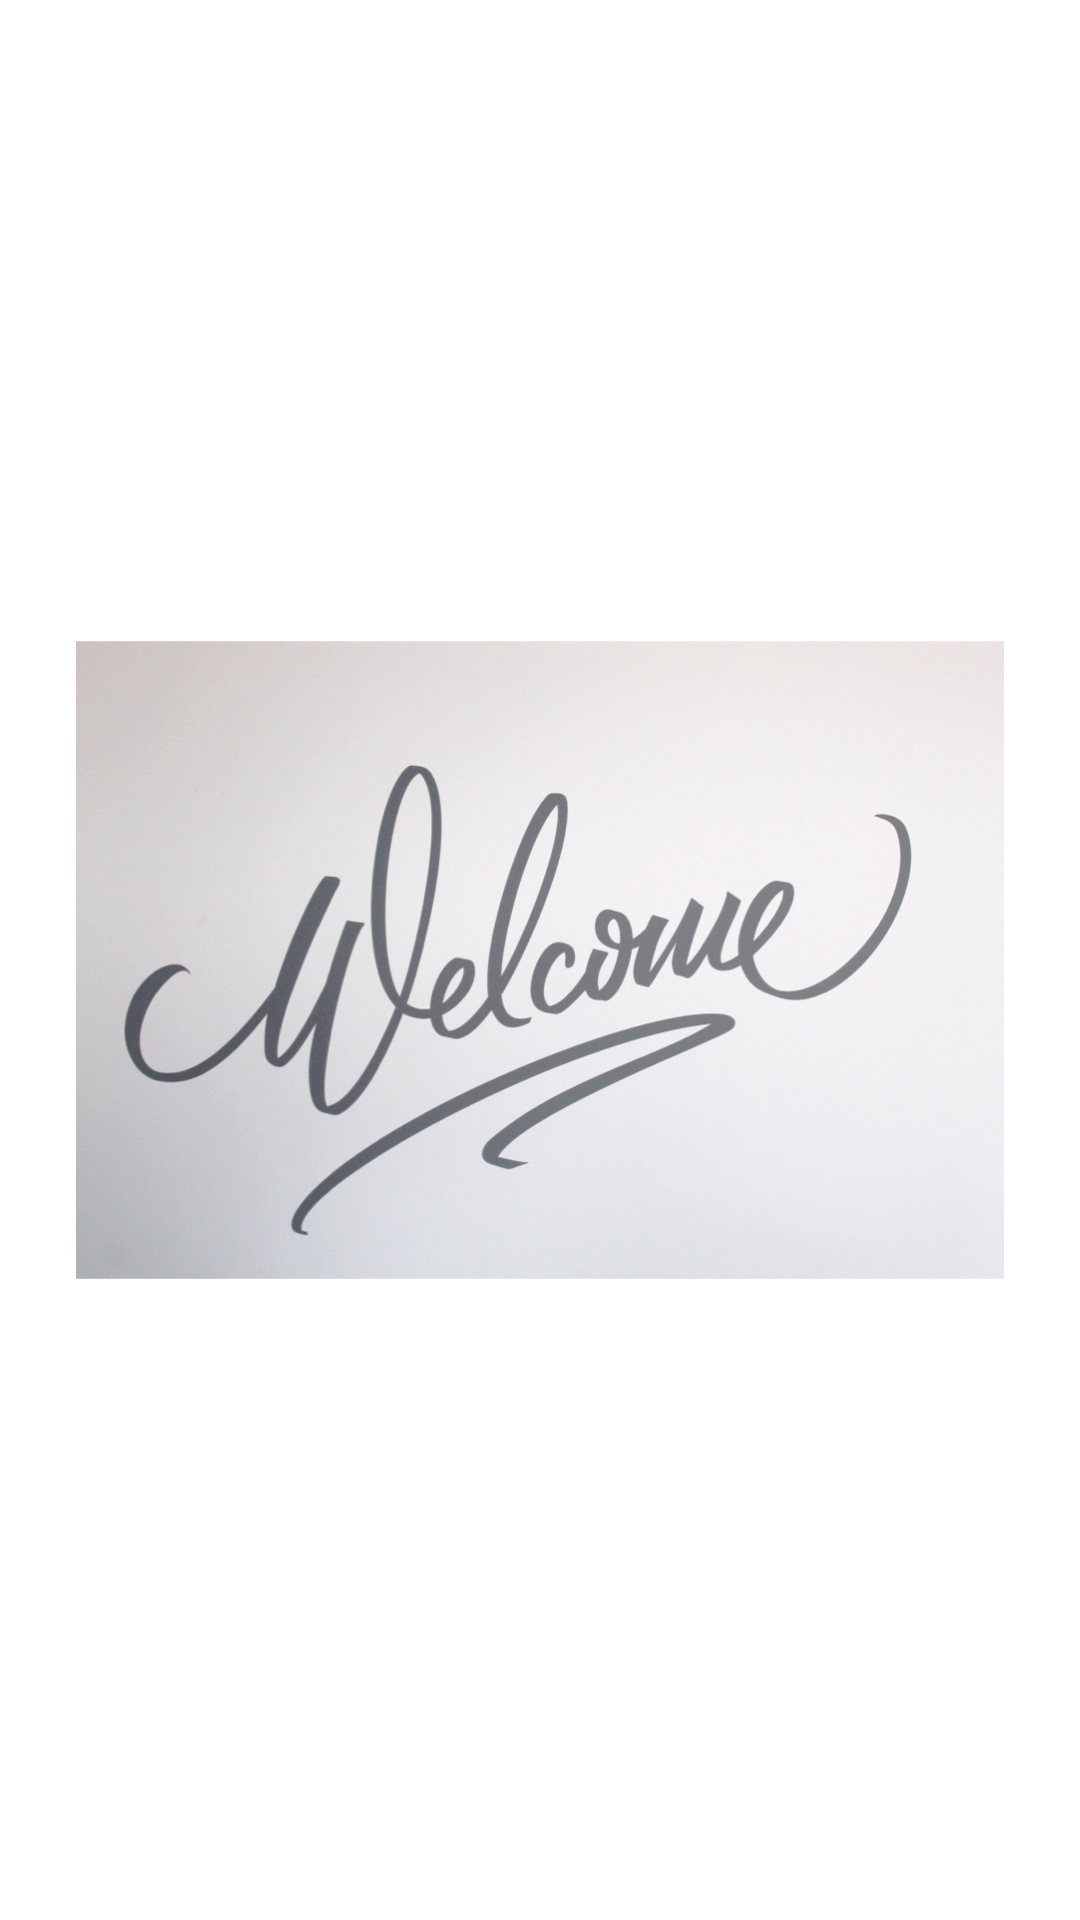 welcome sign edit